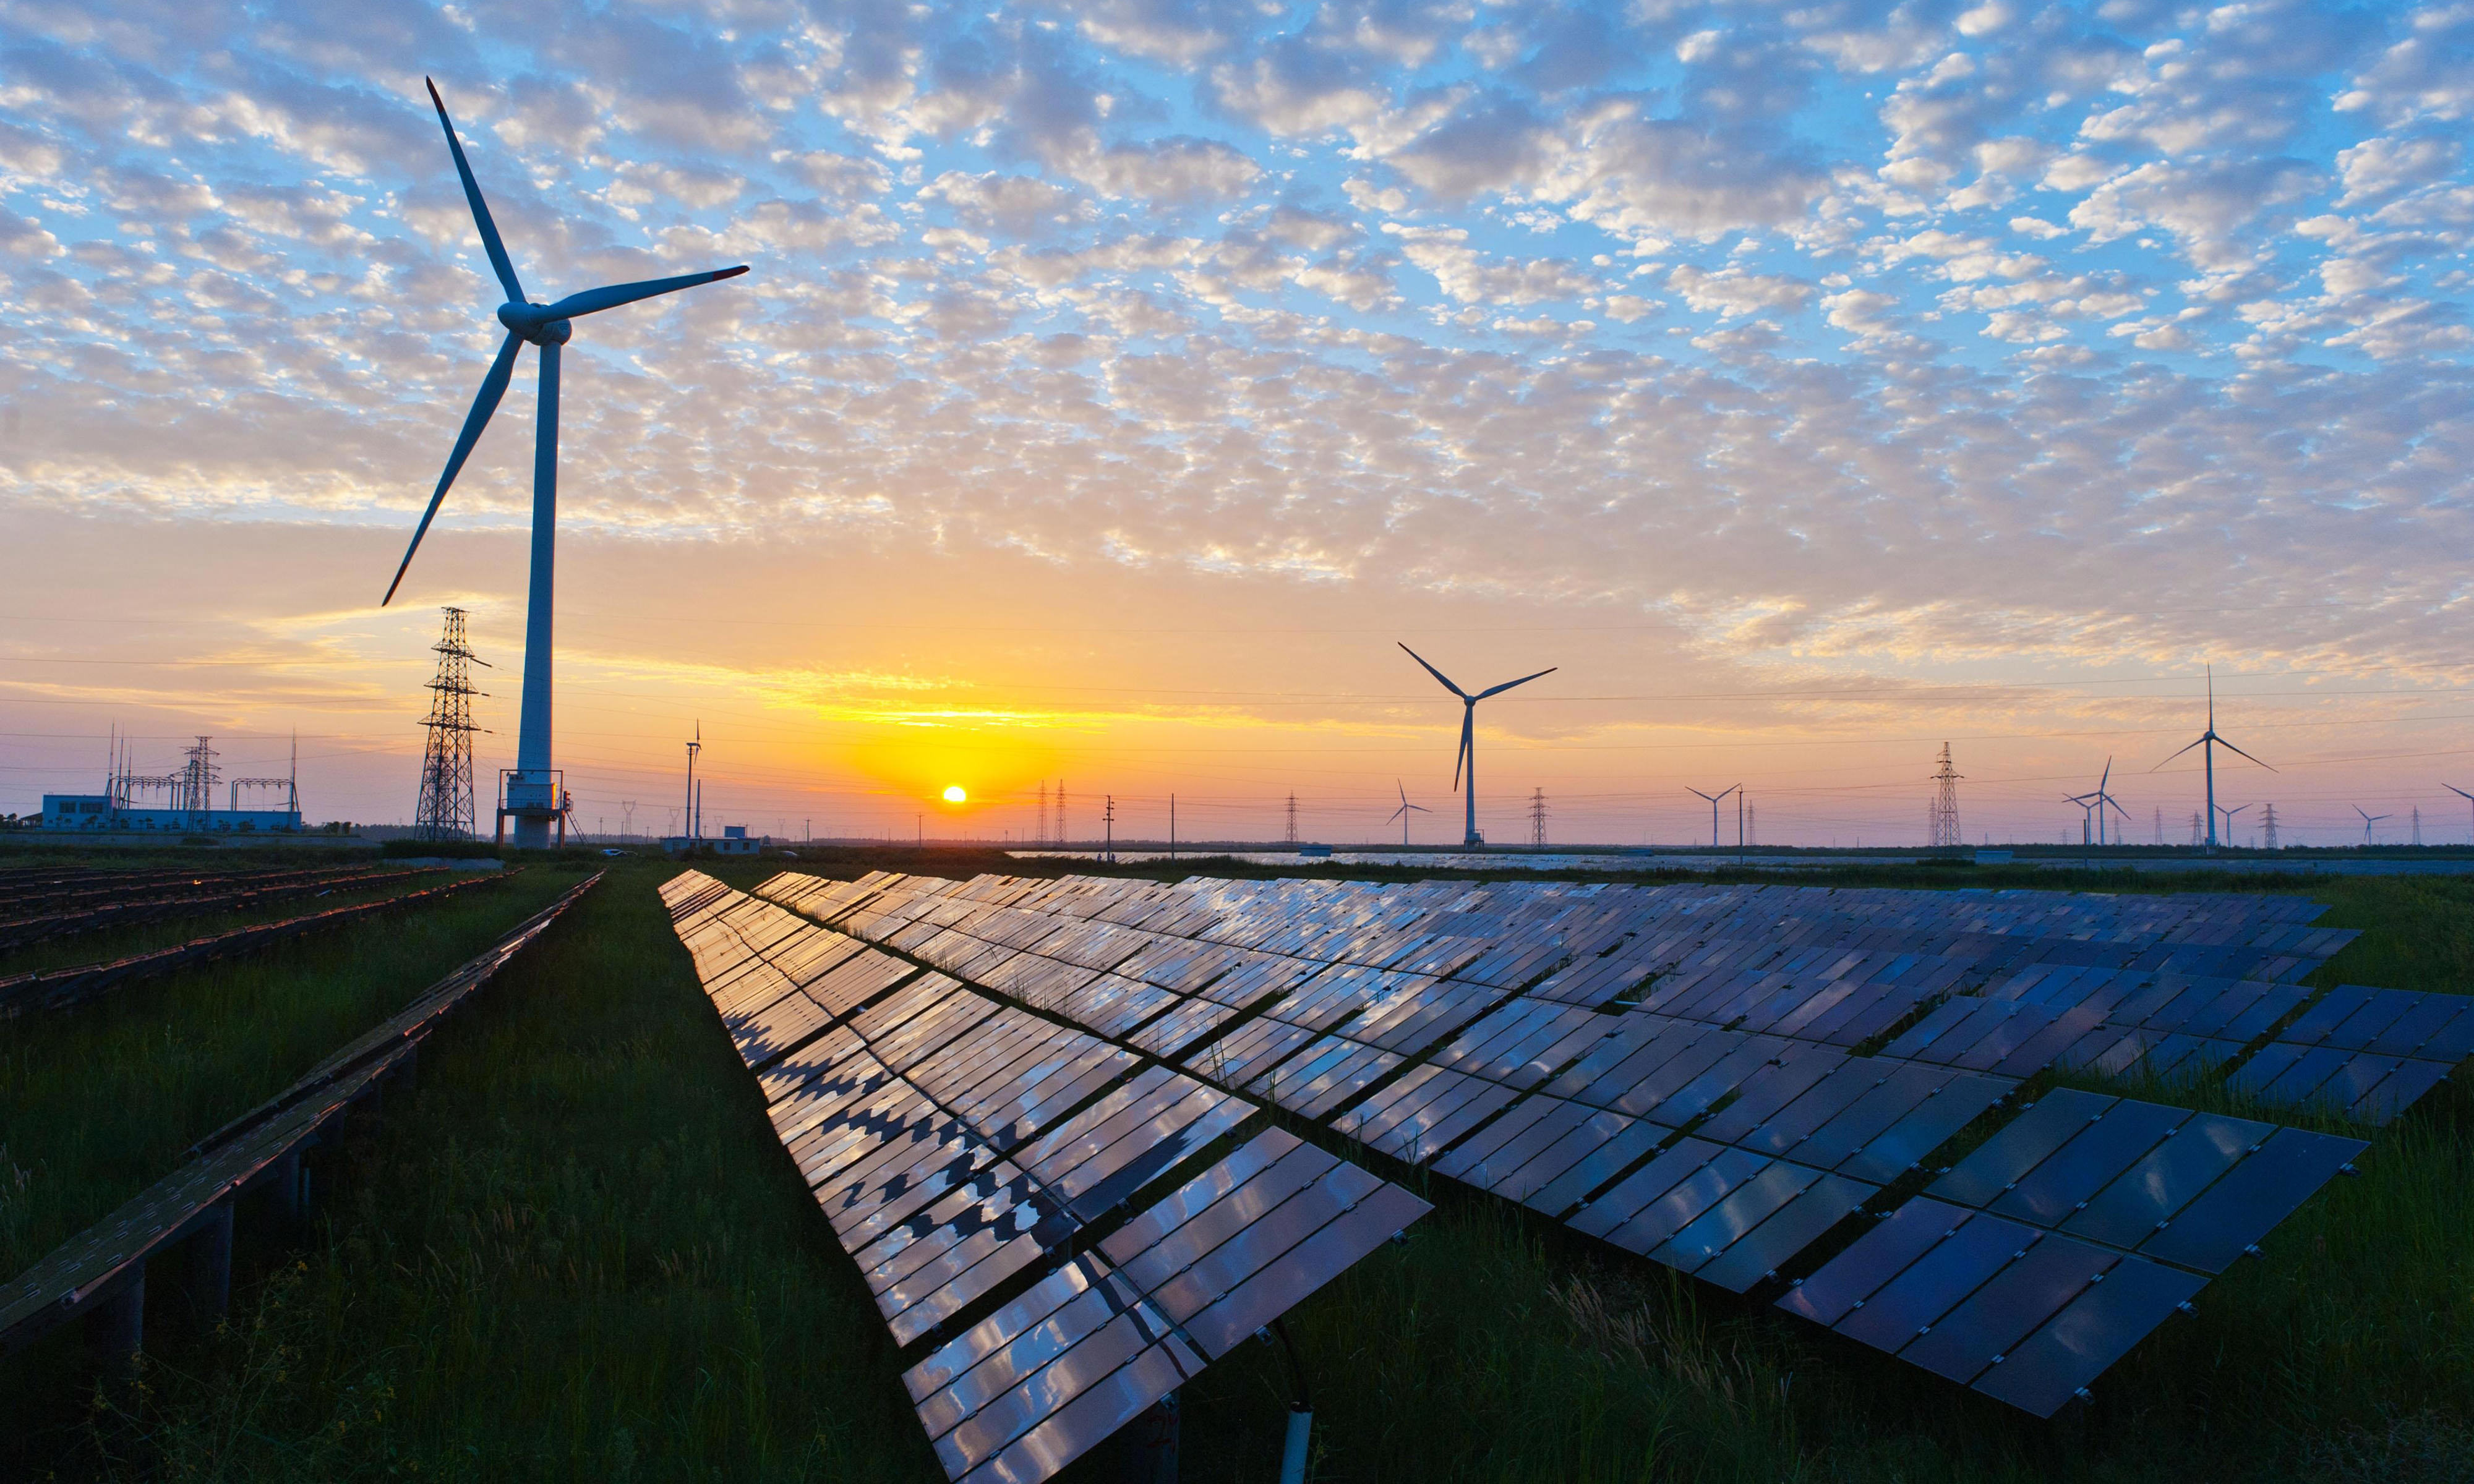 sunset-view-at-solar-power-station